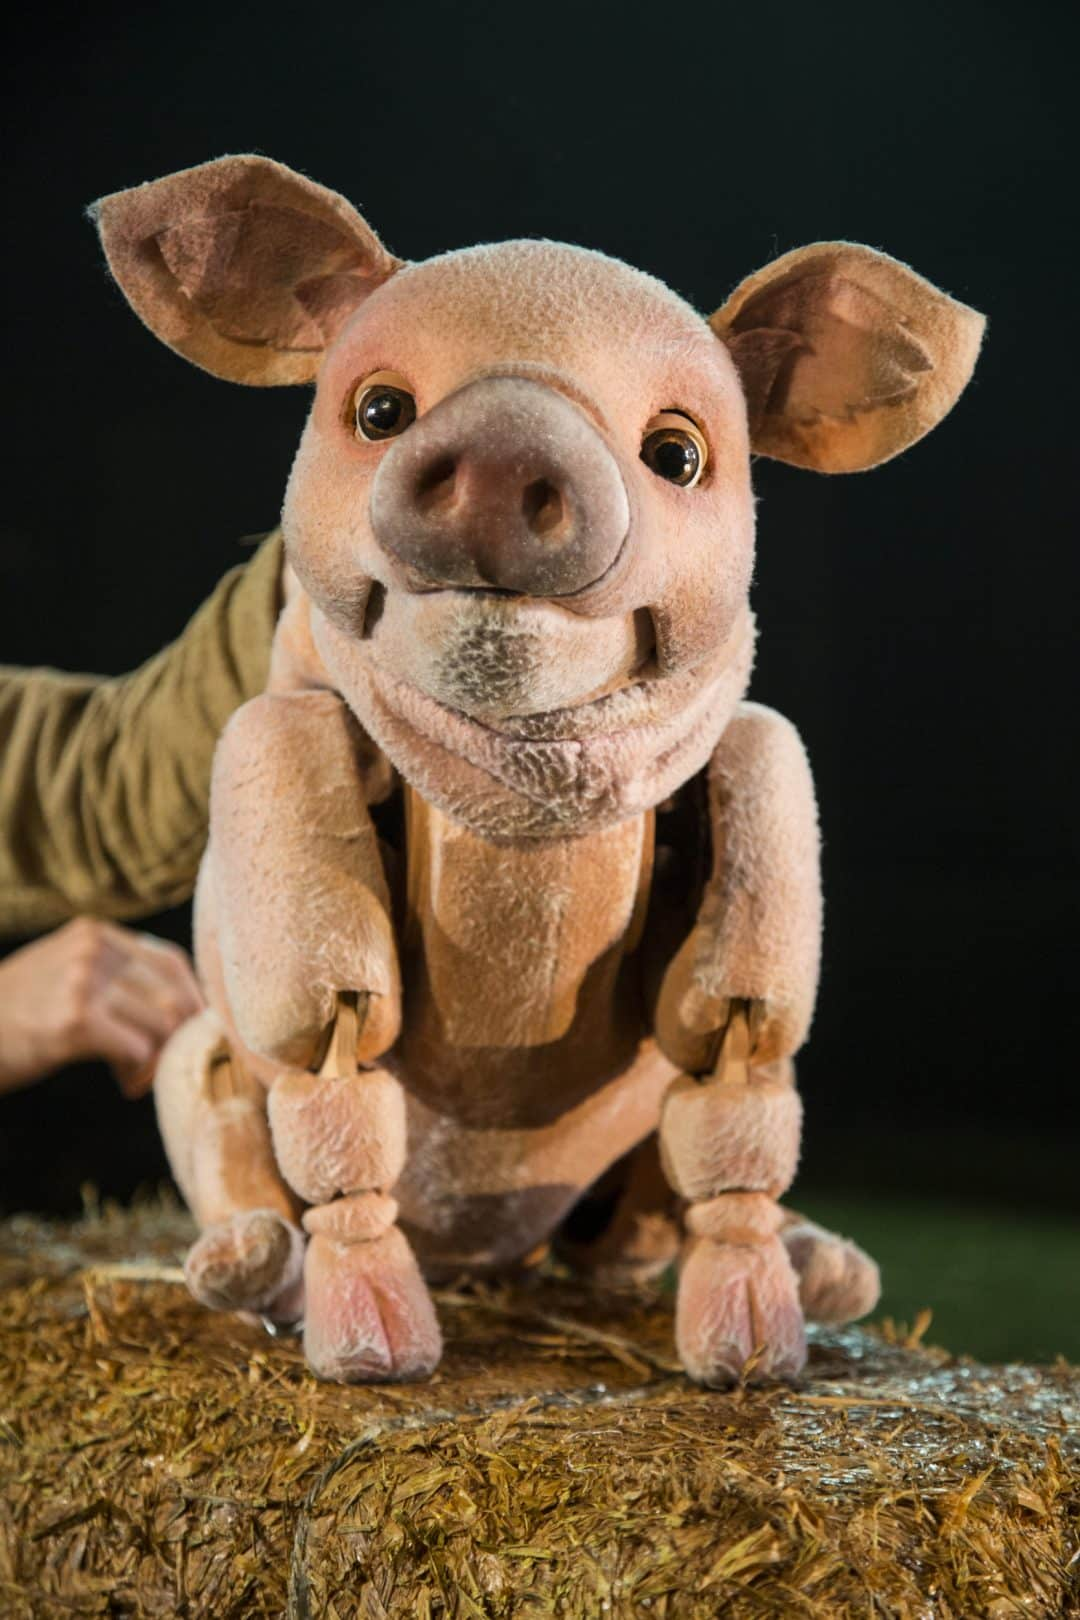 Babe The Sheep Pig live on stage